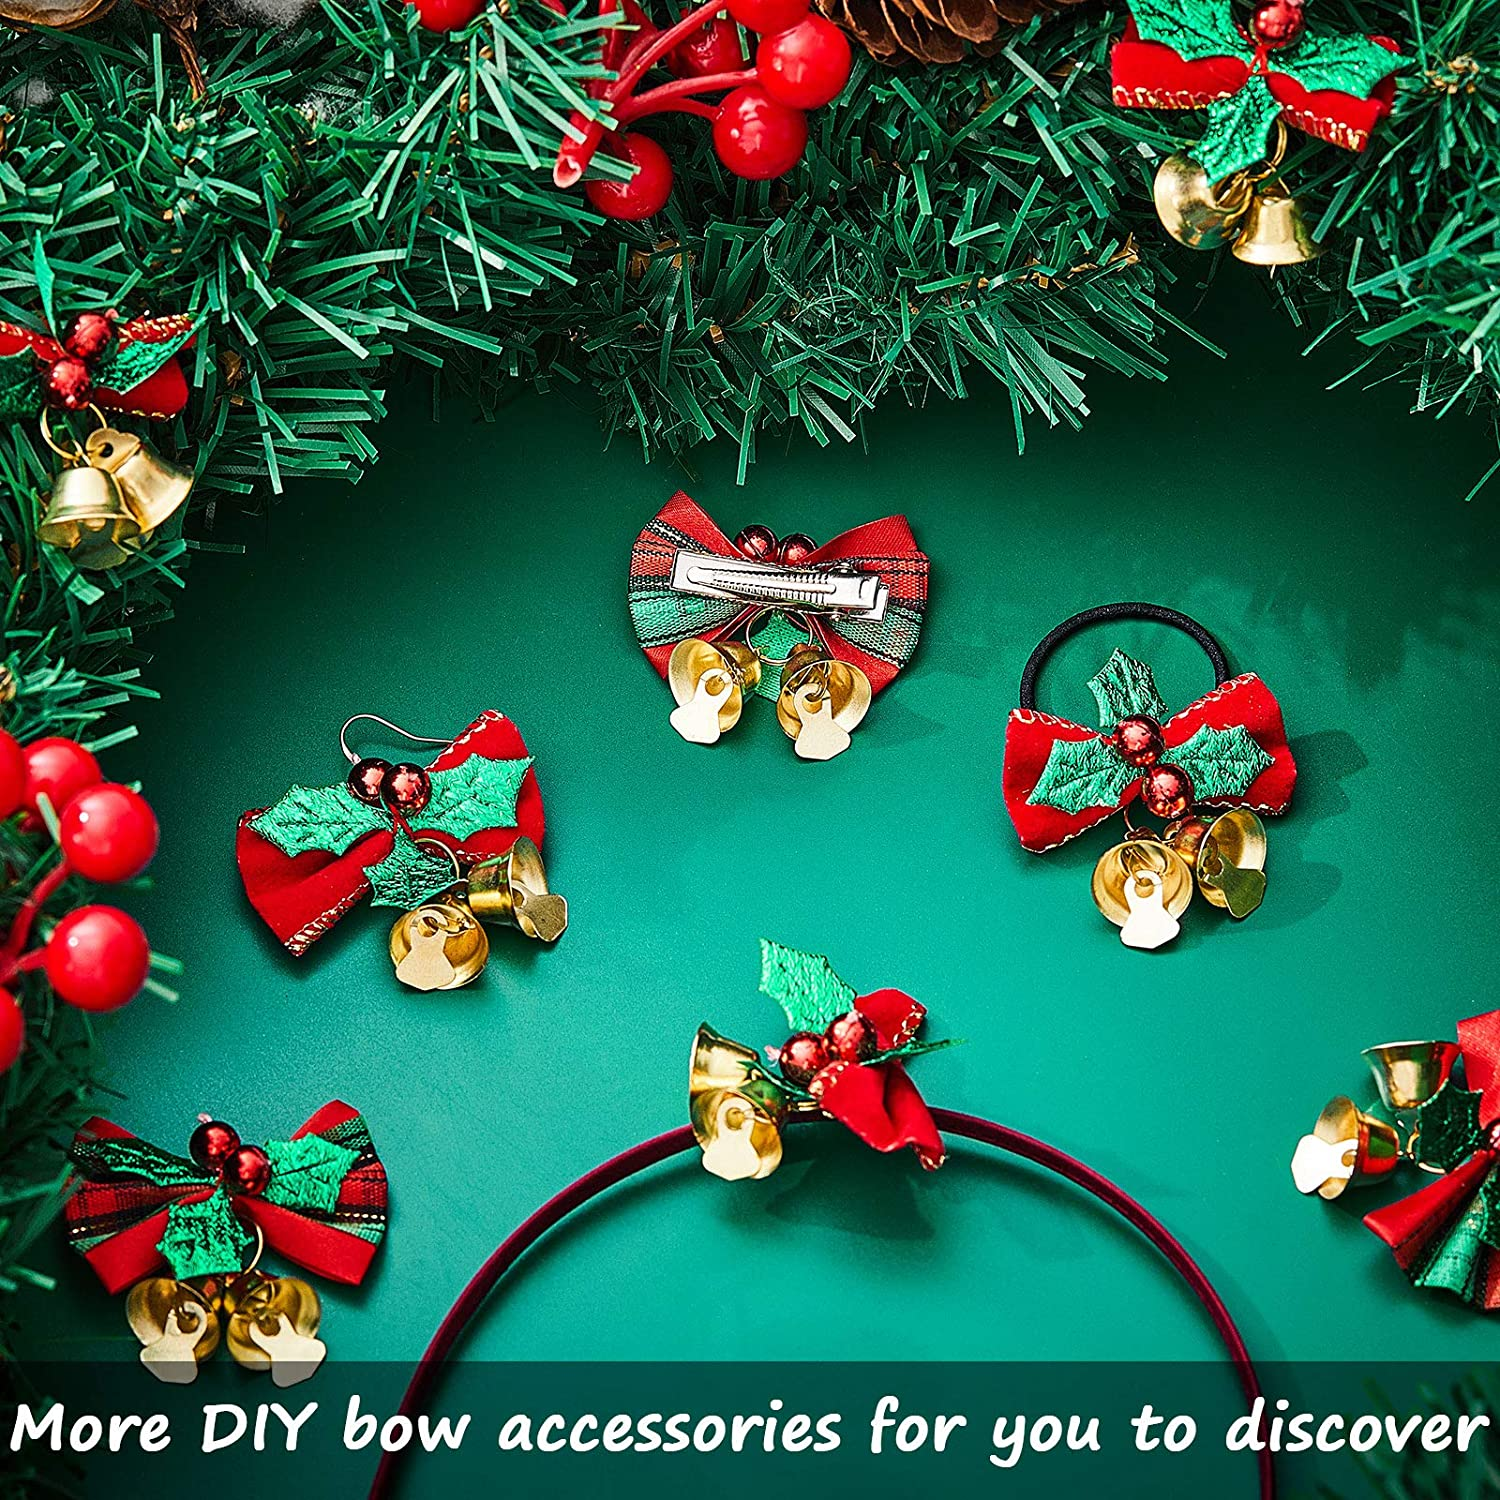 2 Styles 24 Pieces Christmas Bow with Bells Christmas Tree Hanging Wreath Decorations Bowknot Ribbon Bows for Christmas Tree Presents Decorations Charms Ornaments